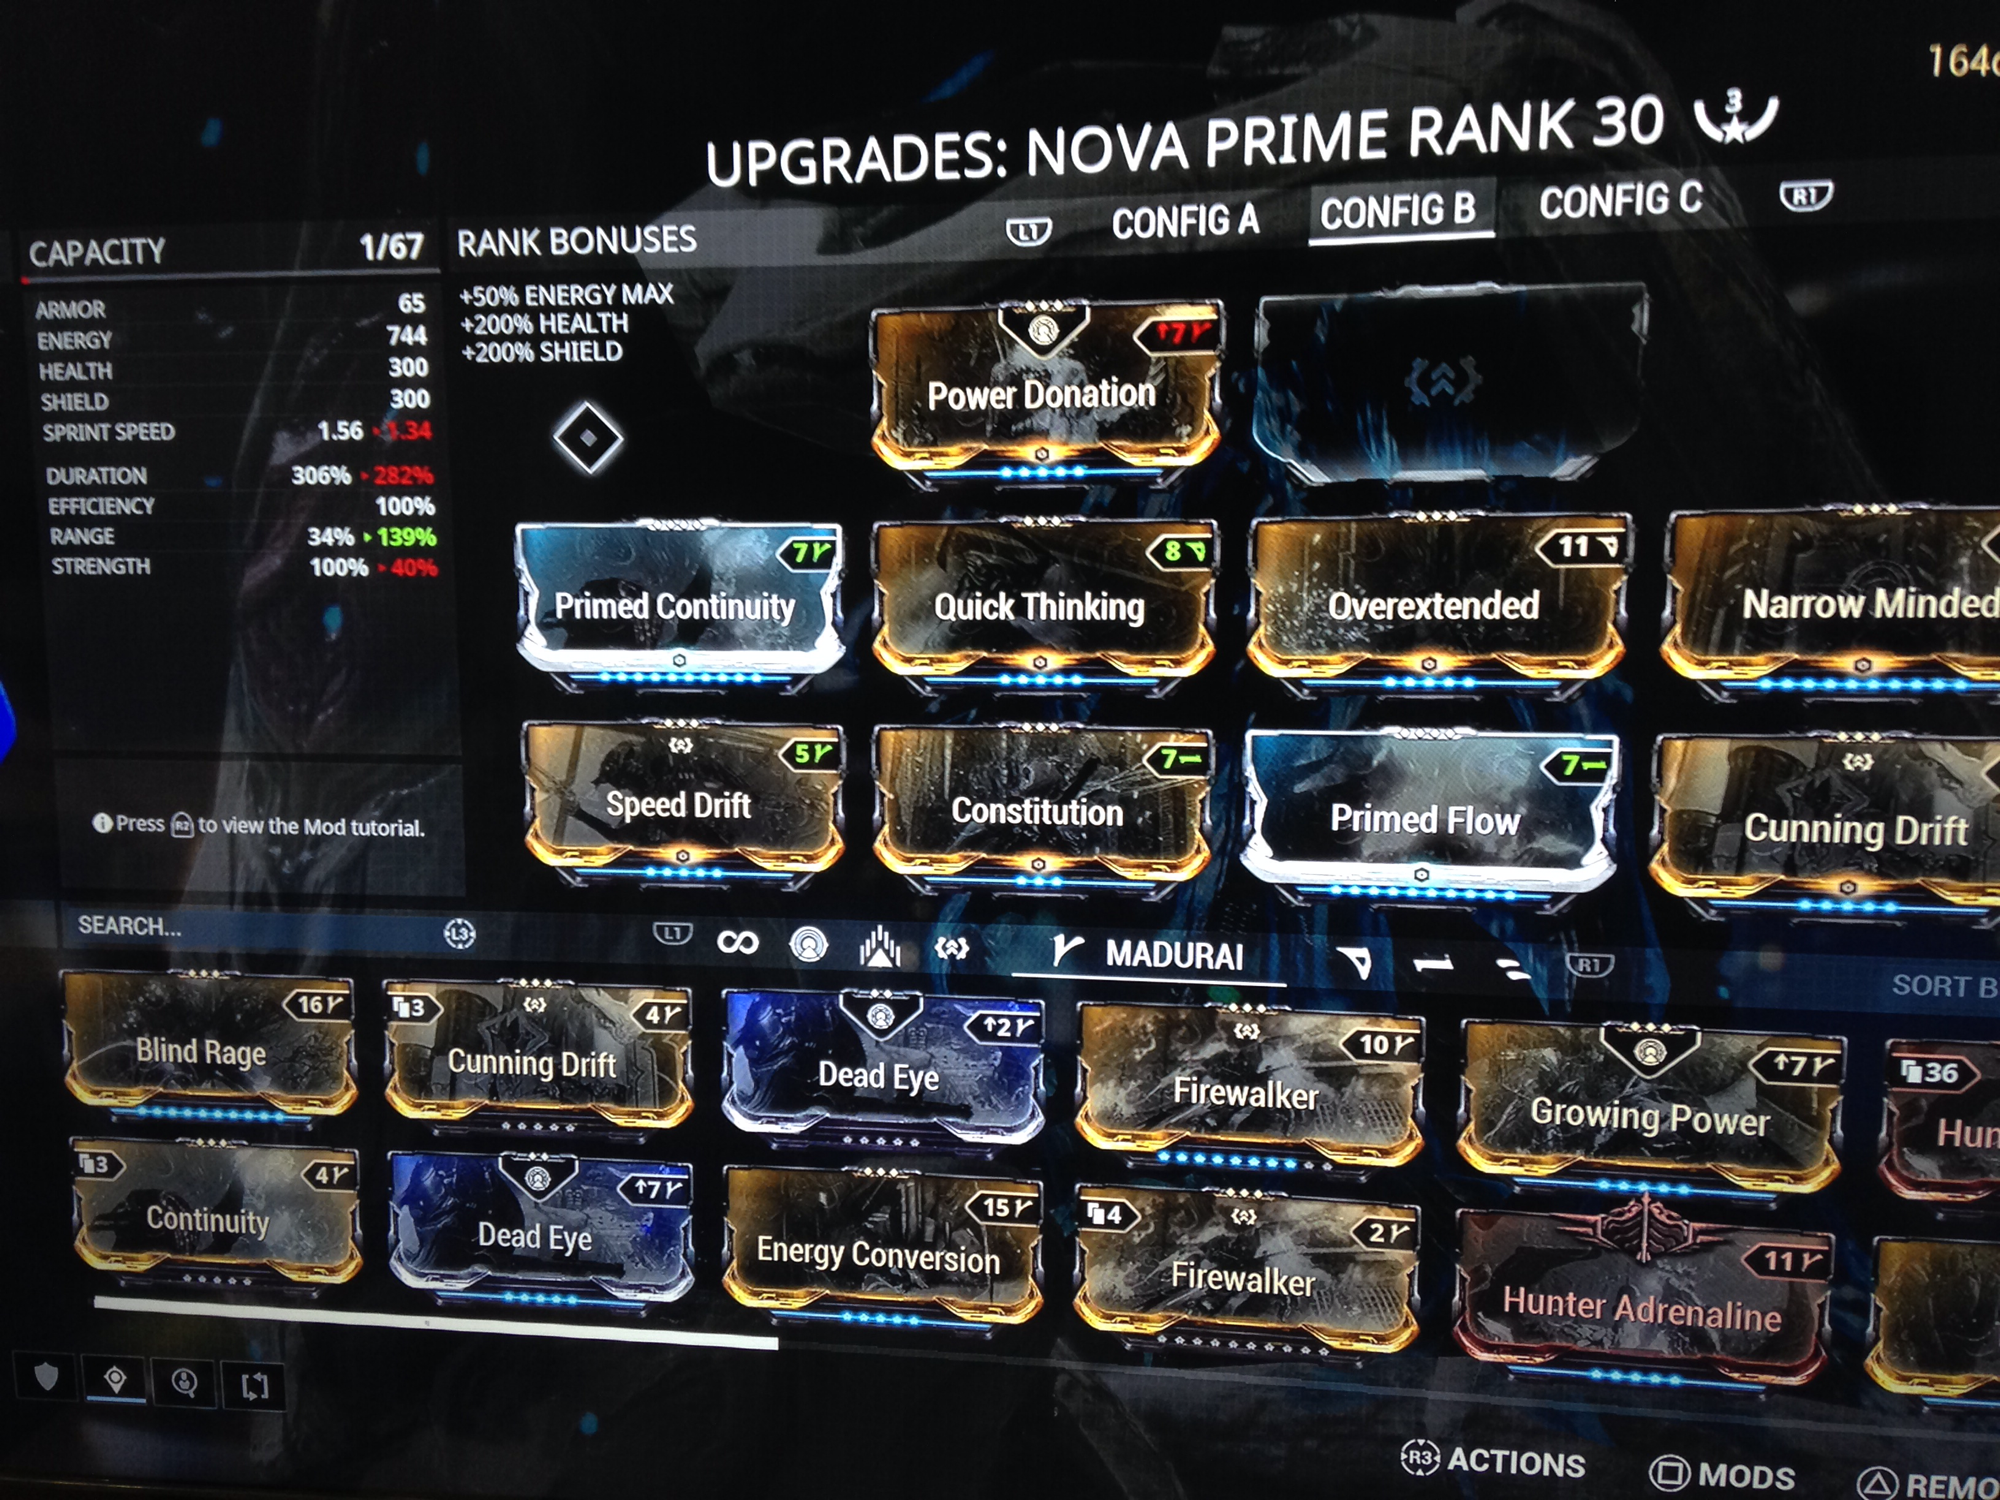 Warframe Nova Prime Build / Upload, livestream, and create your own videos, all in hd.